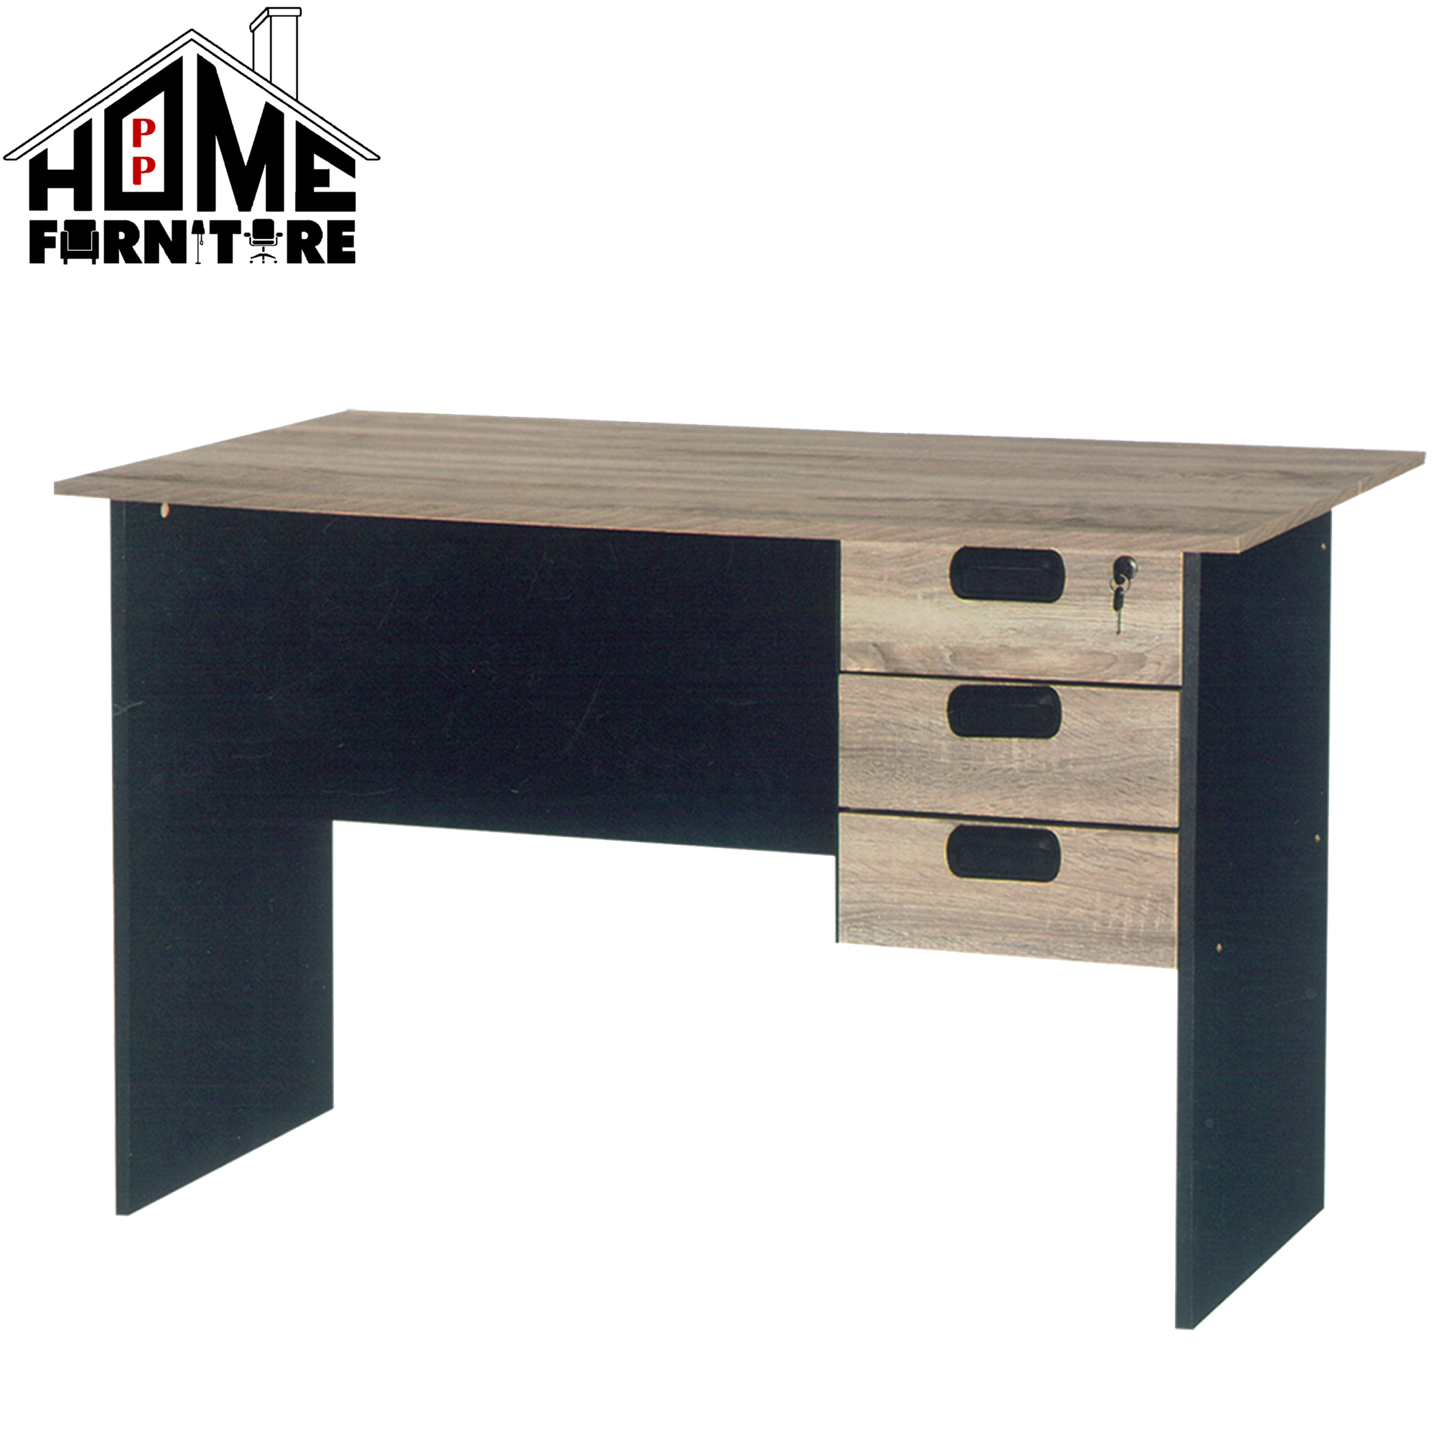 PP HOME Study Table with drawer locker/Writing table/Working table /PC table/ Student table/Home office table/Multipurpose table/Desk/Computer table/Destop/laptop/Meja belajar/Meja tulis/Meja kerja/komputer电脑桌/书桌/工作桌/读书桌/办公桌WT2828-LO